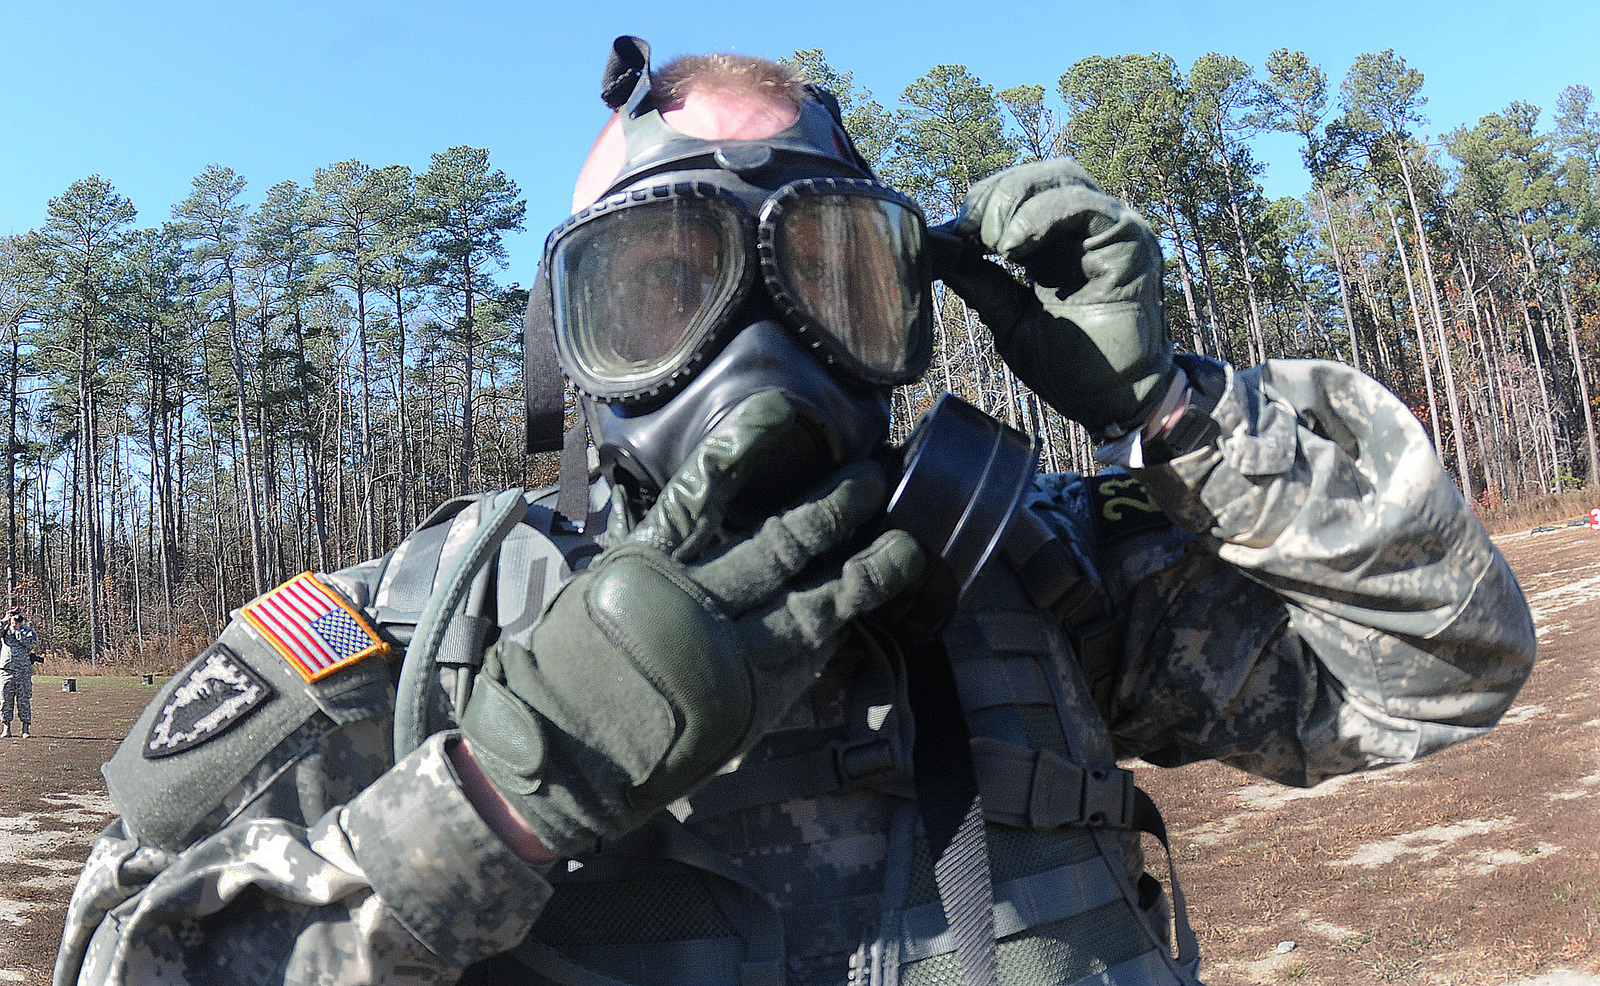 Anthrax how to fight the deadly epidemic in the us